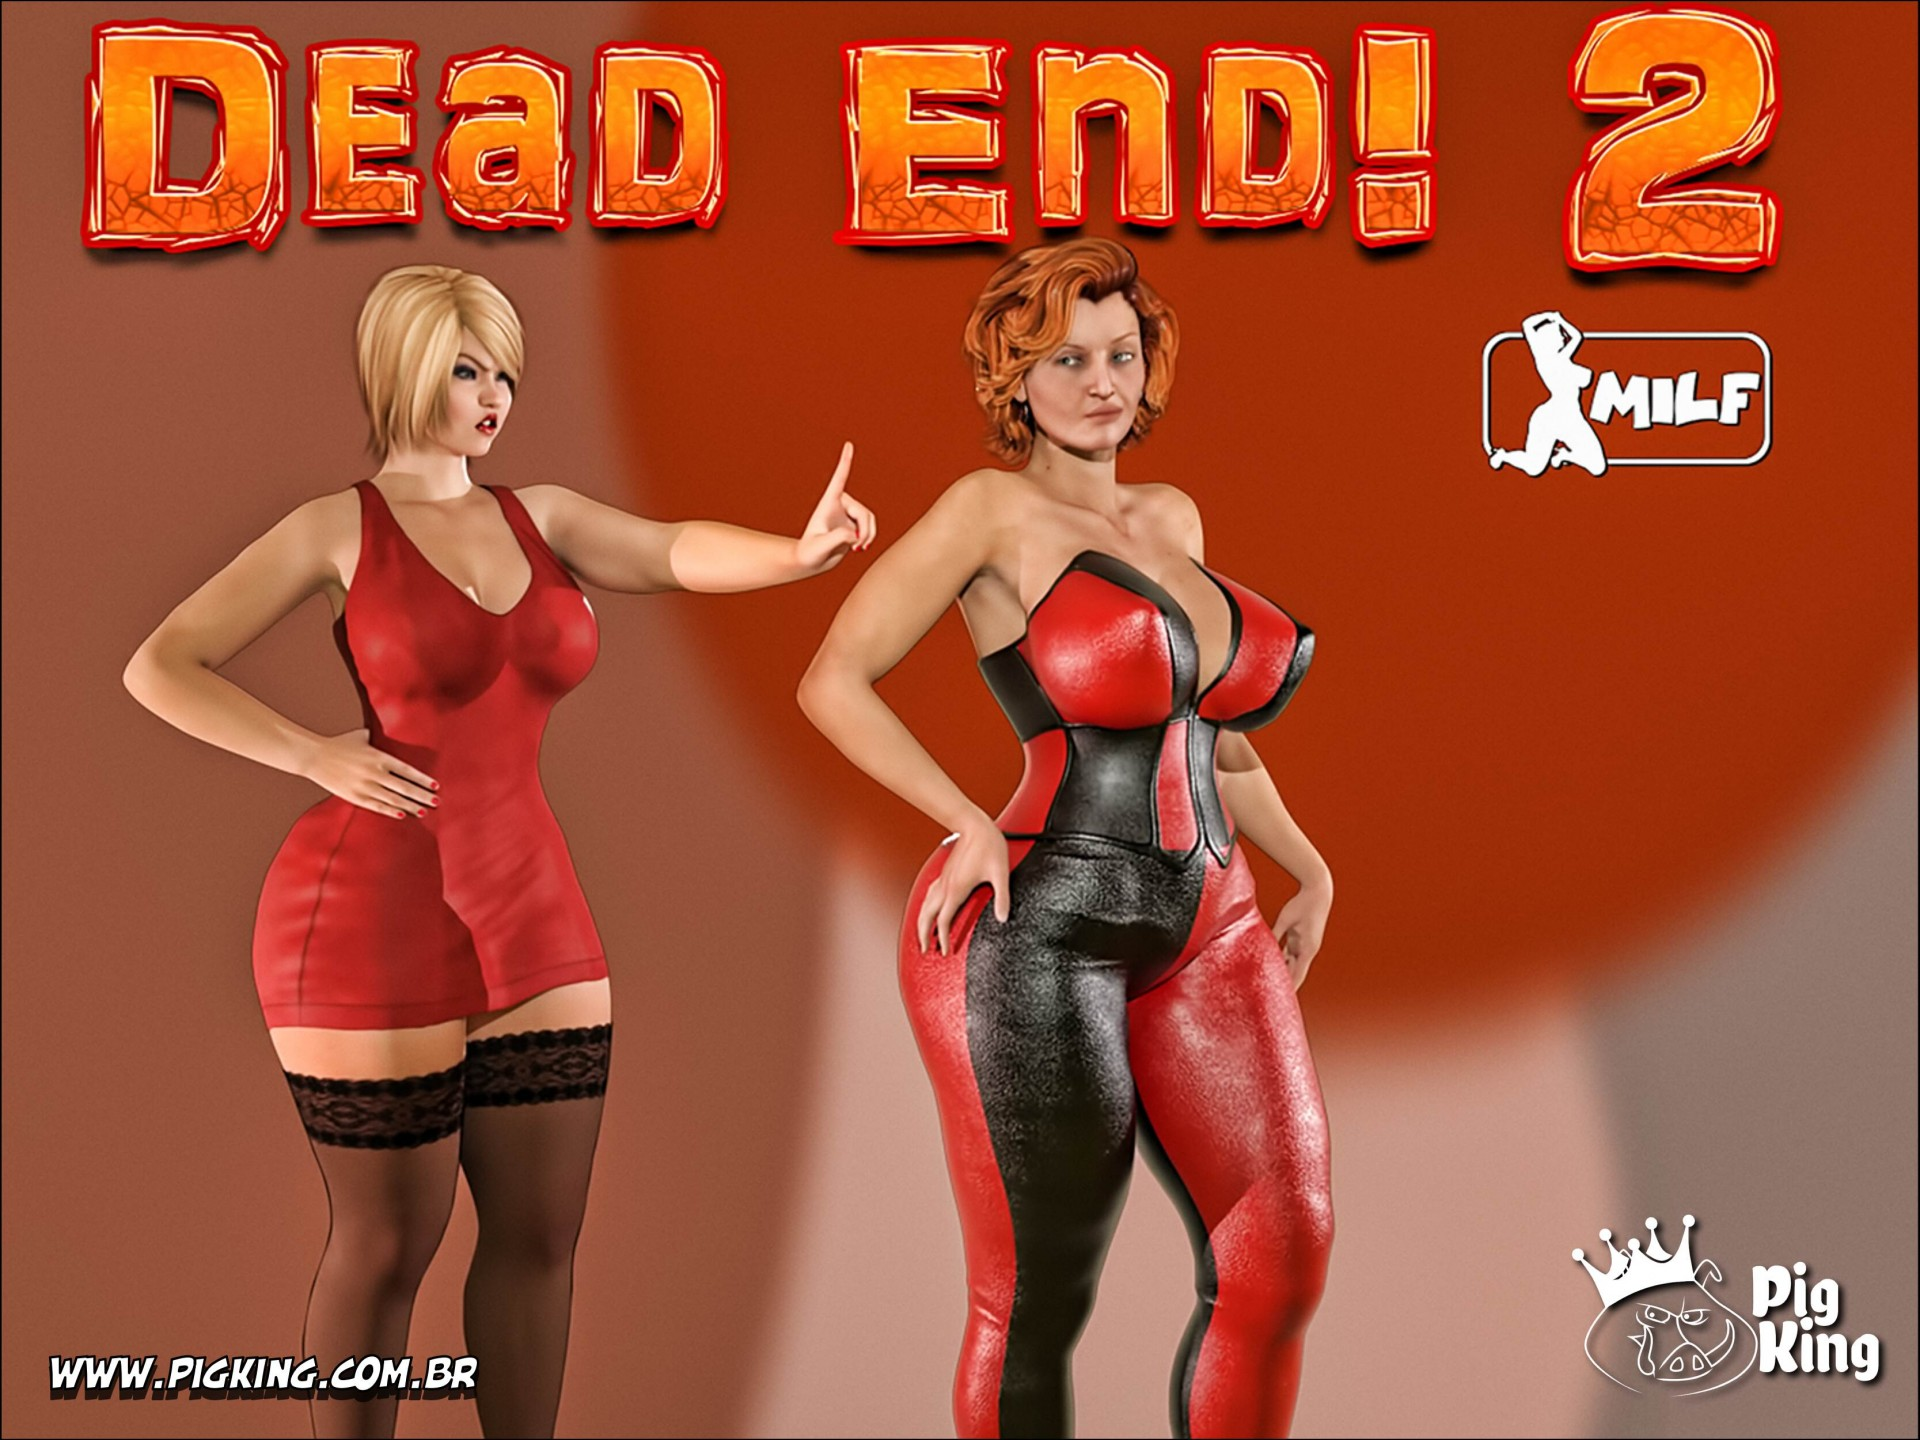 Dead End! Ch. 2 by Pig King